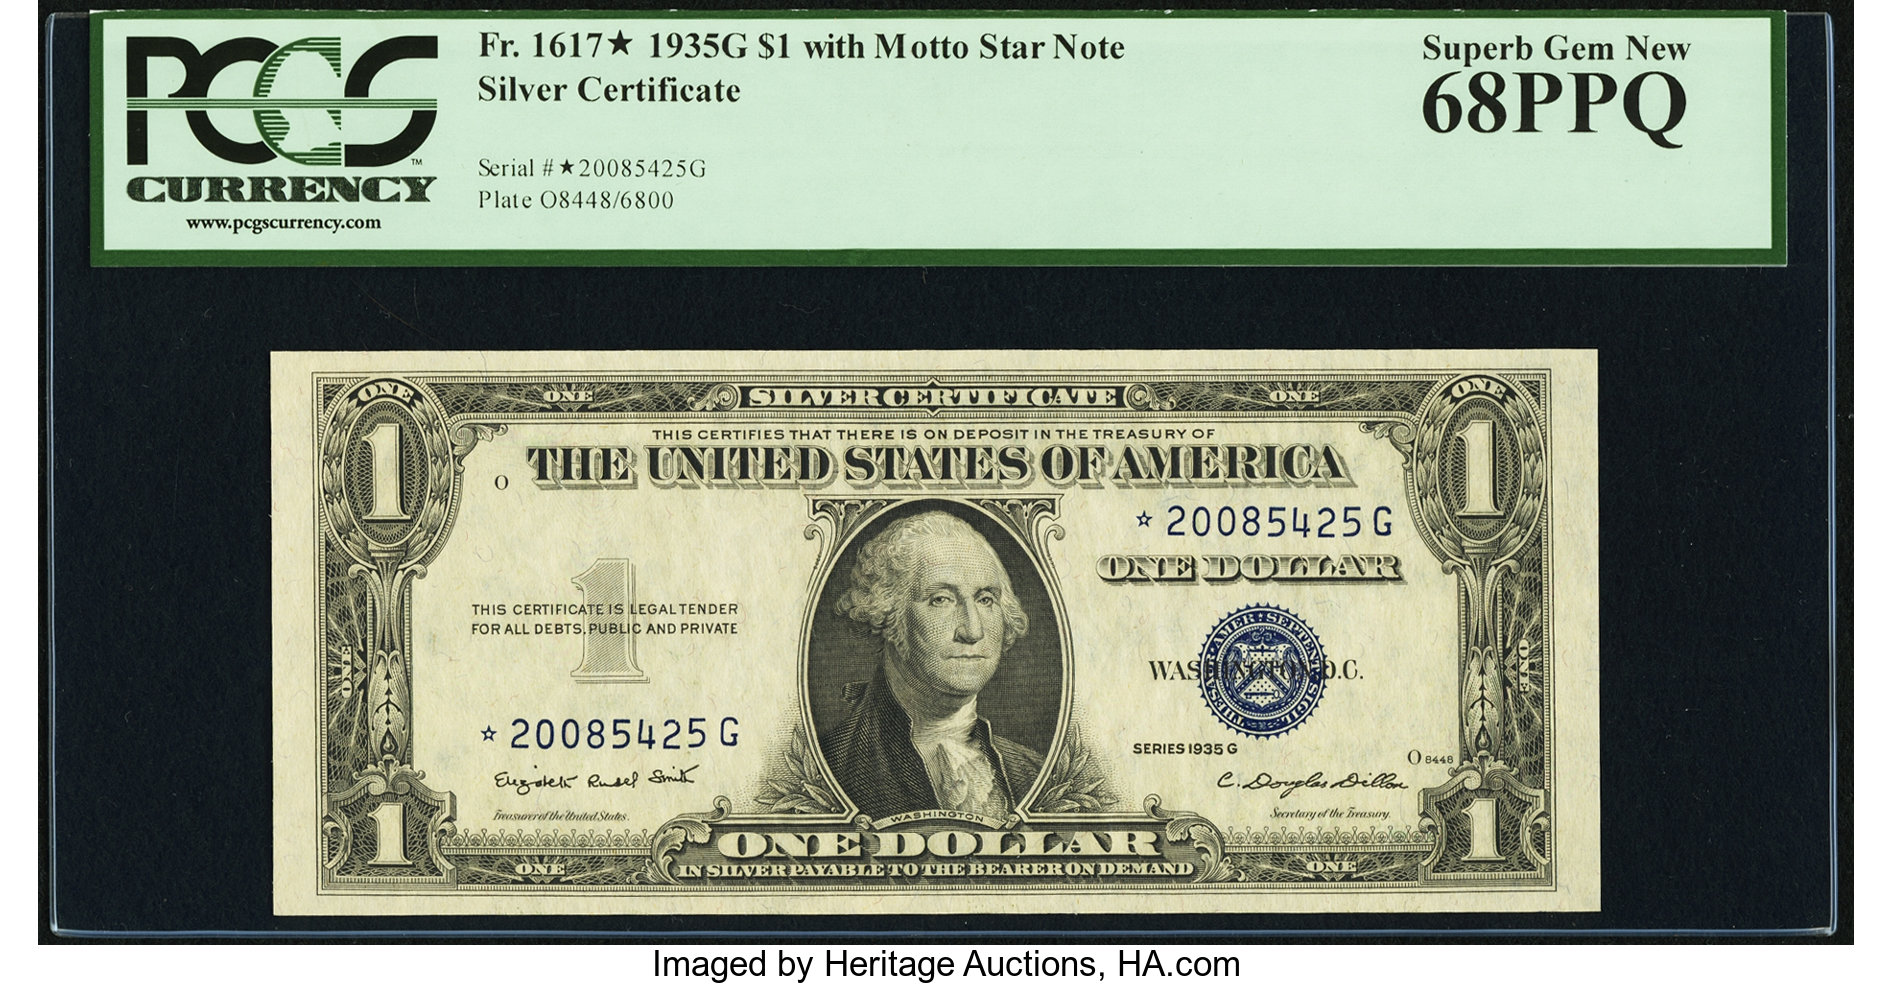 sample image for 1935G $1  Replacement (Fr.# 1617*)